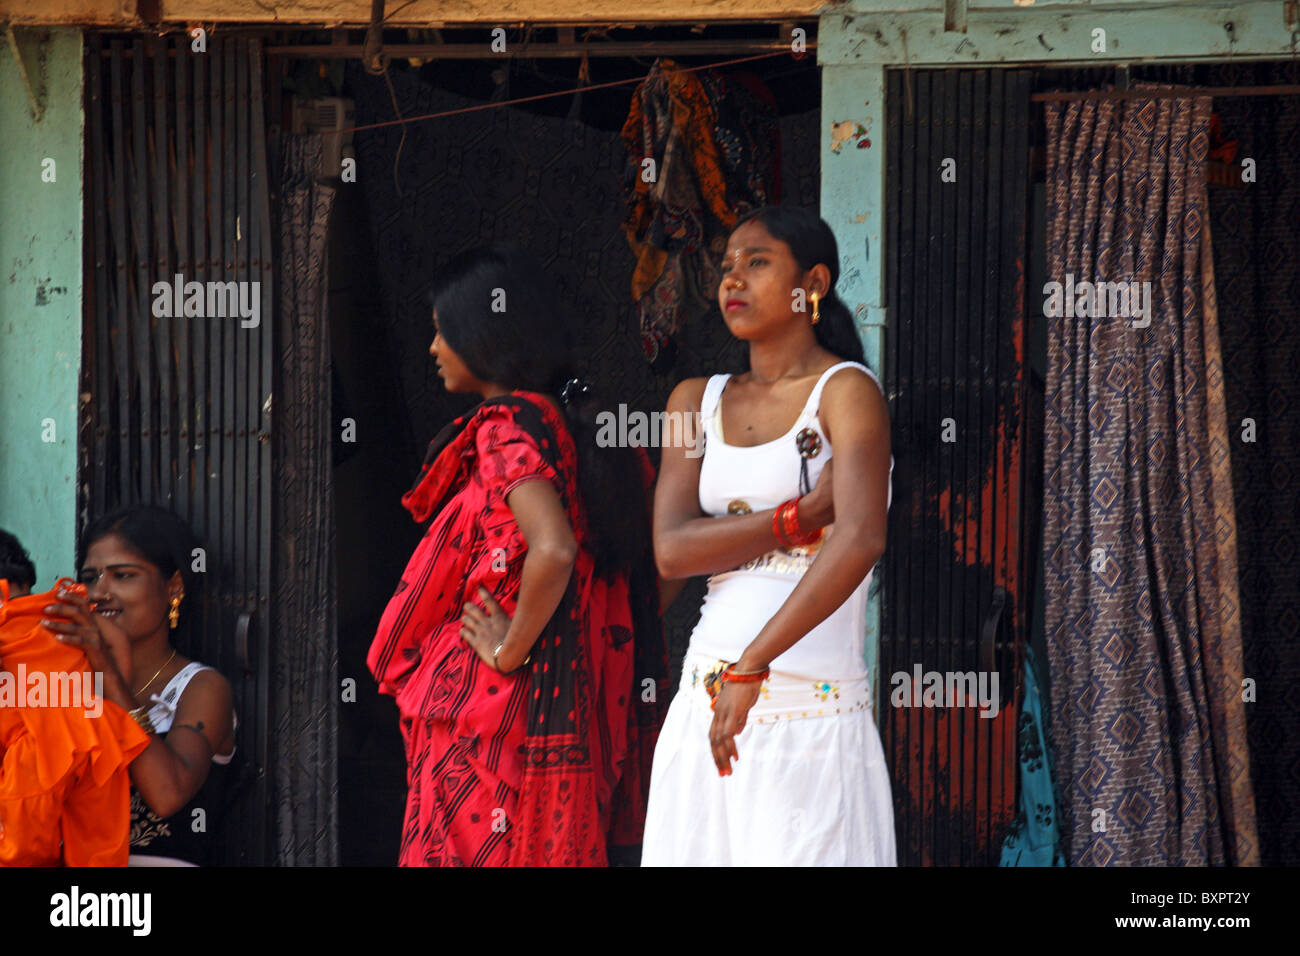 Images of indian prostitutes